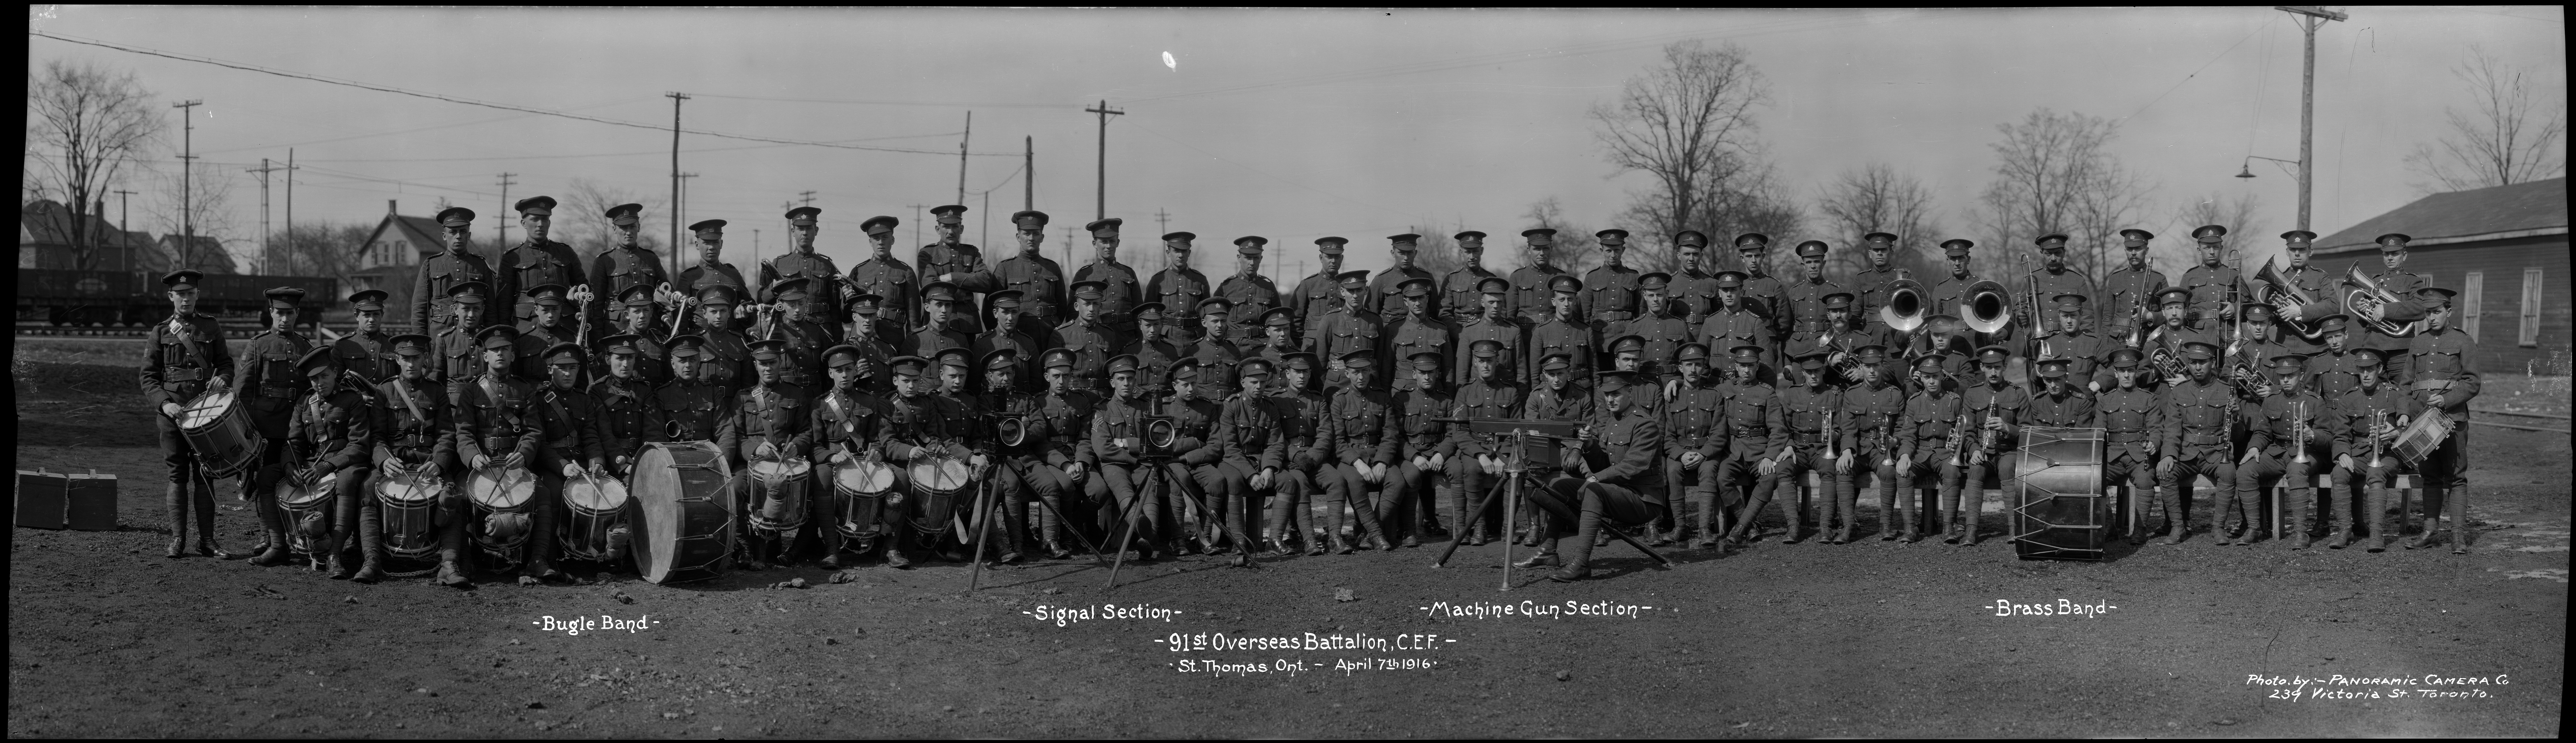 A panoramic photograph showing the soldiers of the 91st Overseas Battalion, Canadian Expeditionary Force, standing and sitting in three rows. The soldiers are dressed in uniform, some are holding drums and other musical instruments.